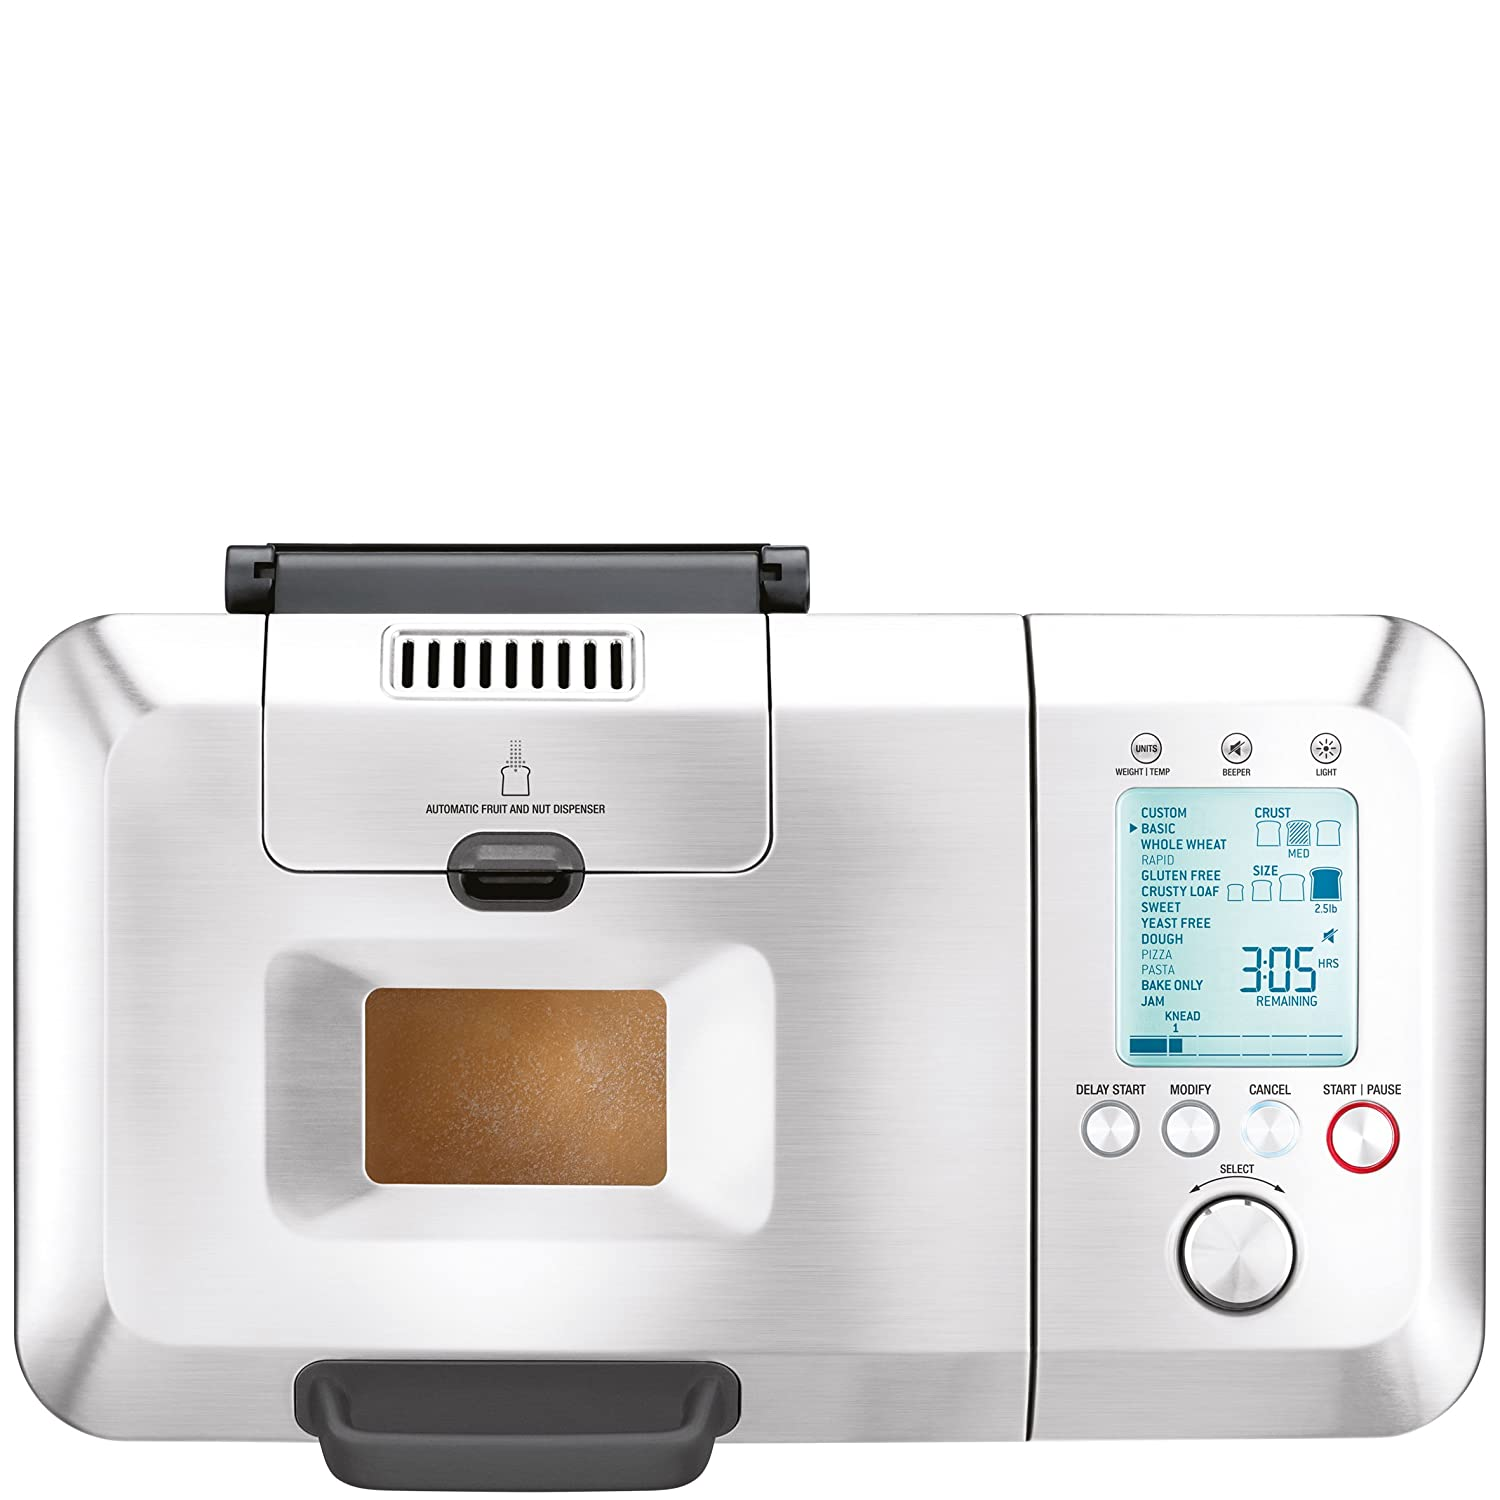 #5 rated in quiet: Breville BBM800XL Custom Loaf Bread Maker, scored 88/100